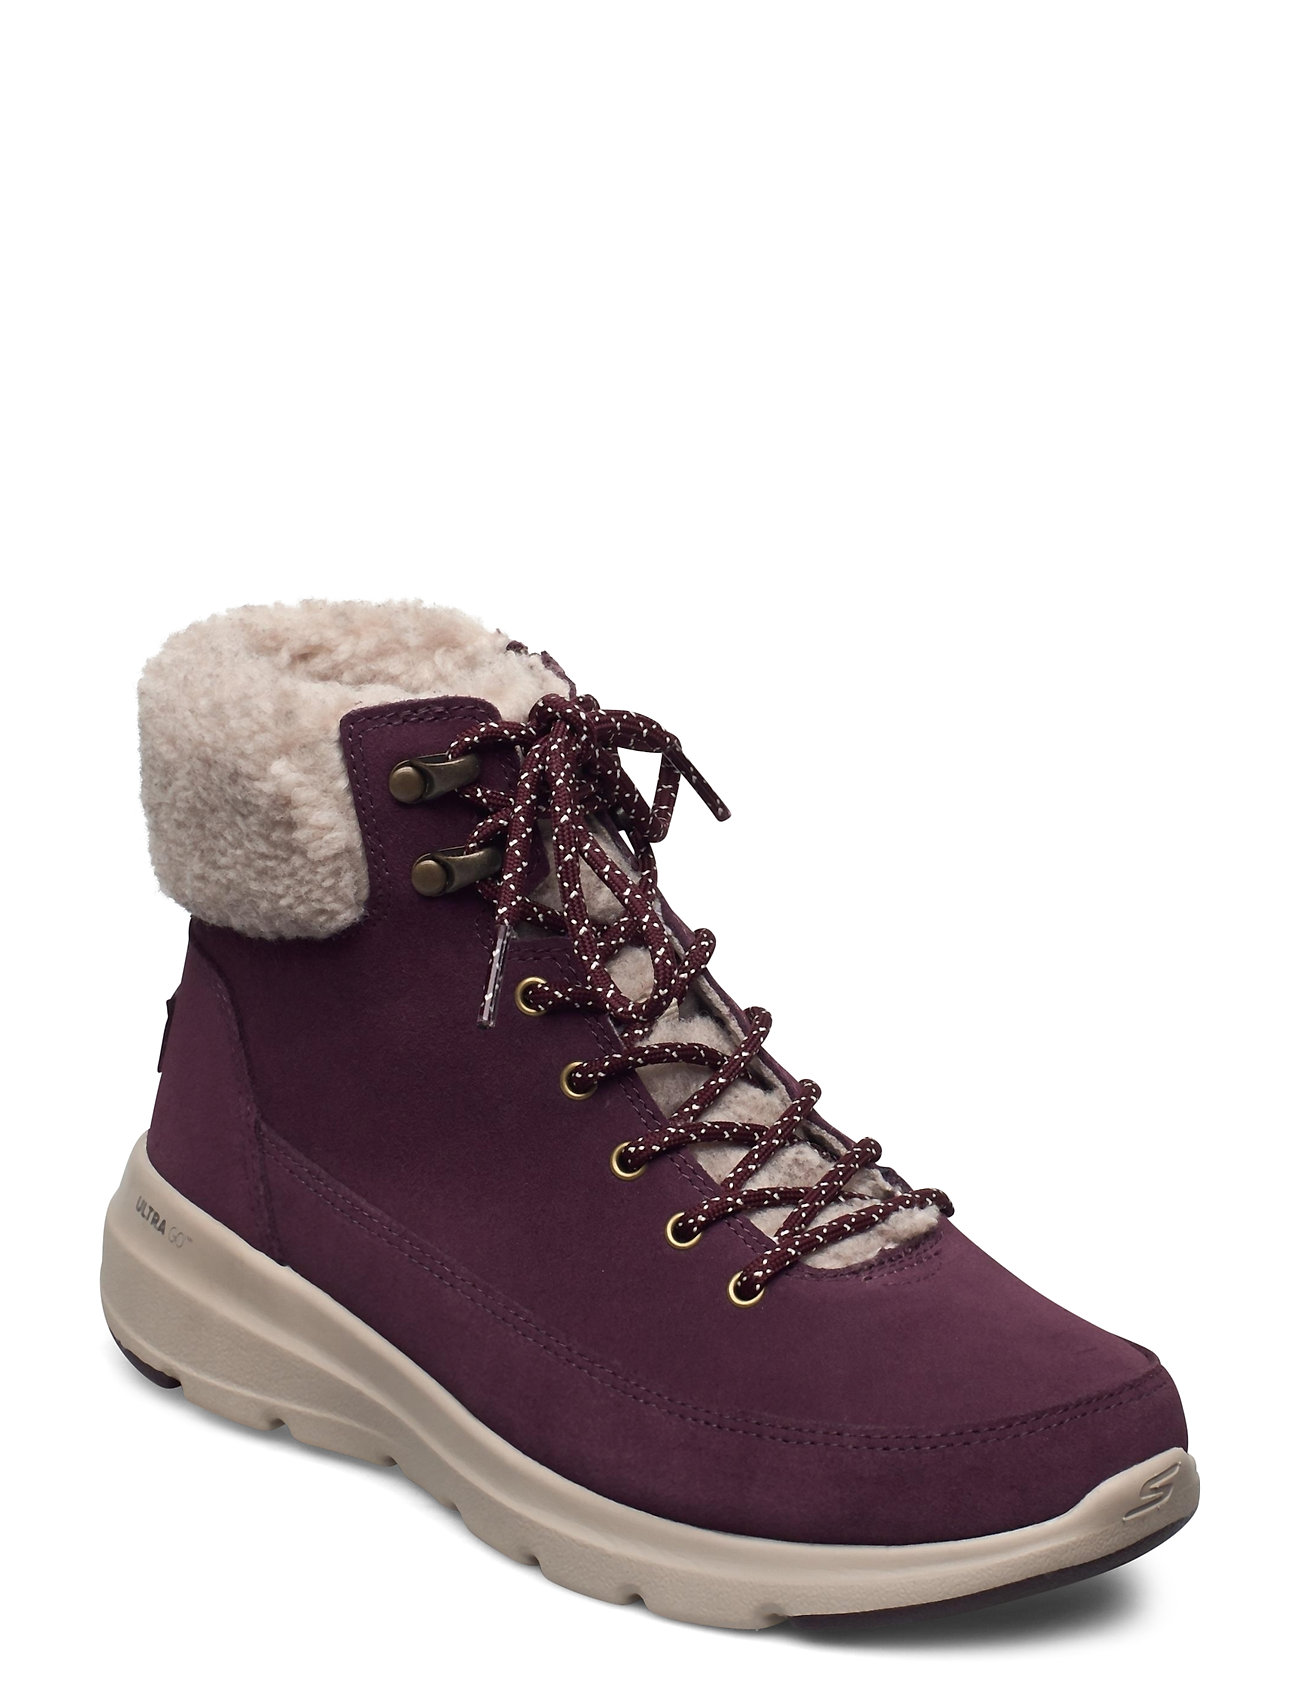 Image of Womens On The Go Glacial Ultra - Woodlands Shoes Boots Ankle Boots Ankle Boot - Flat Lilla Skechers (3460114831)